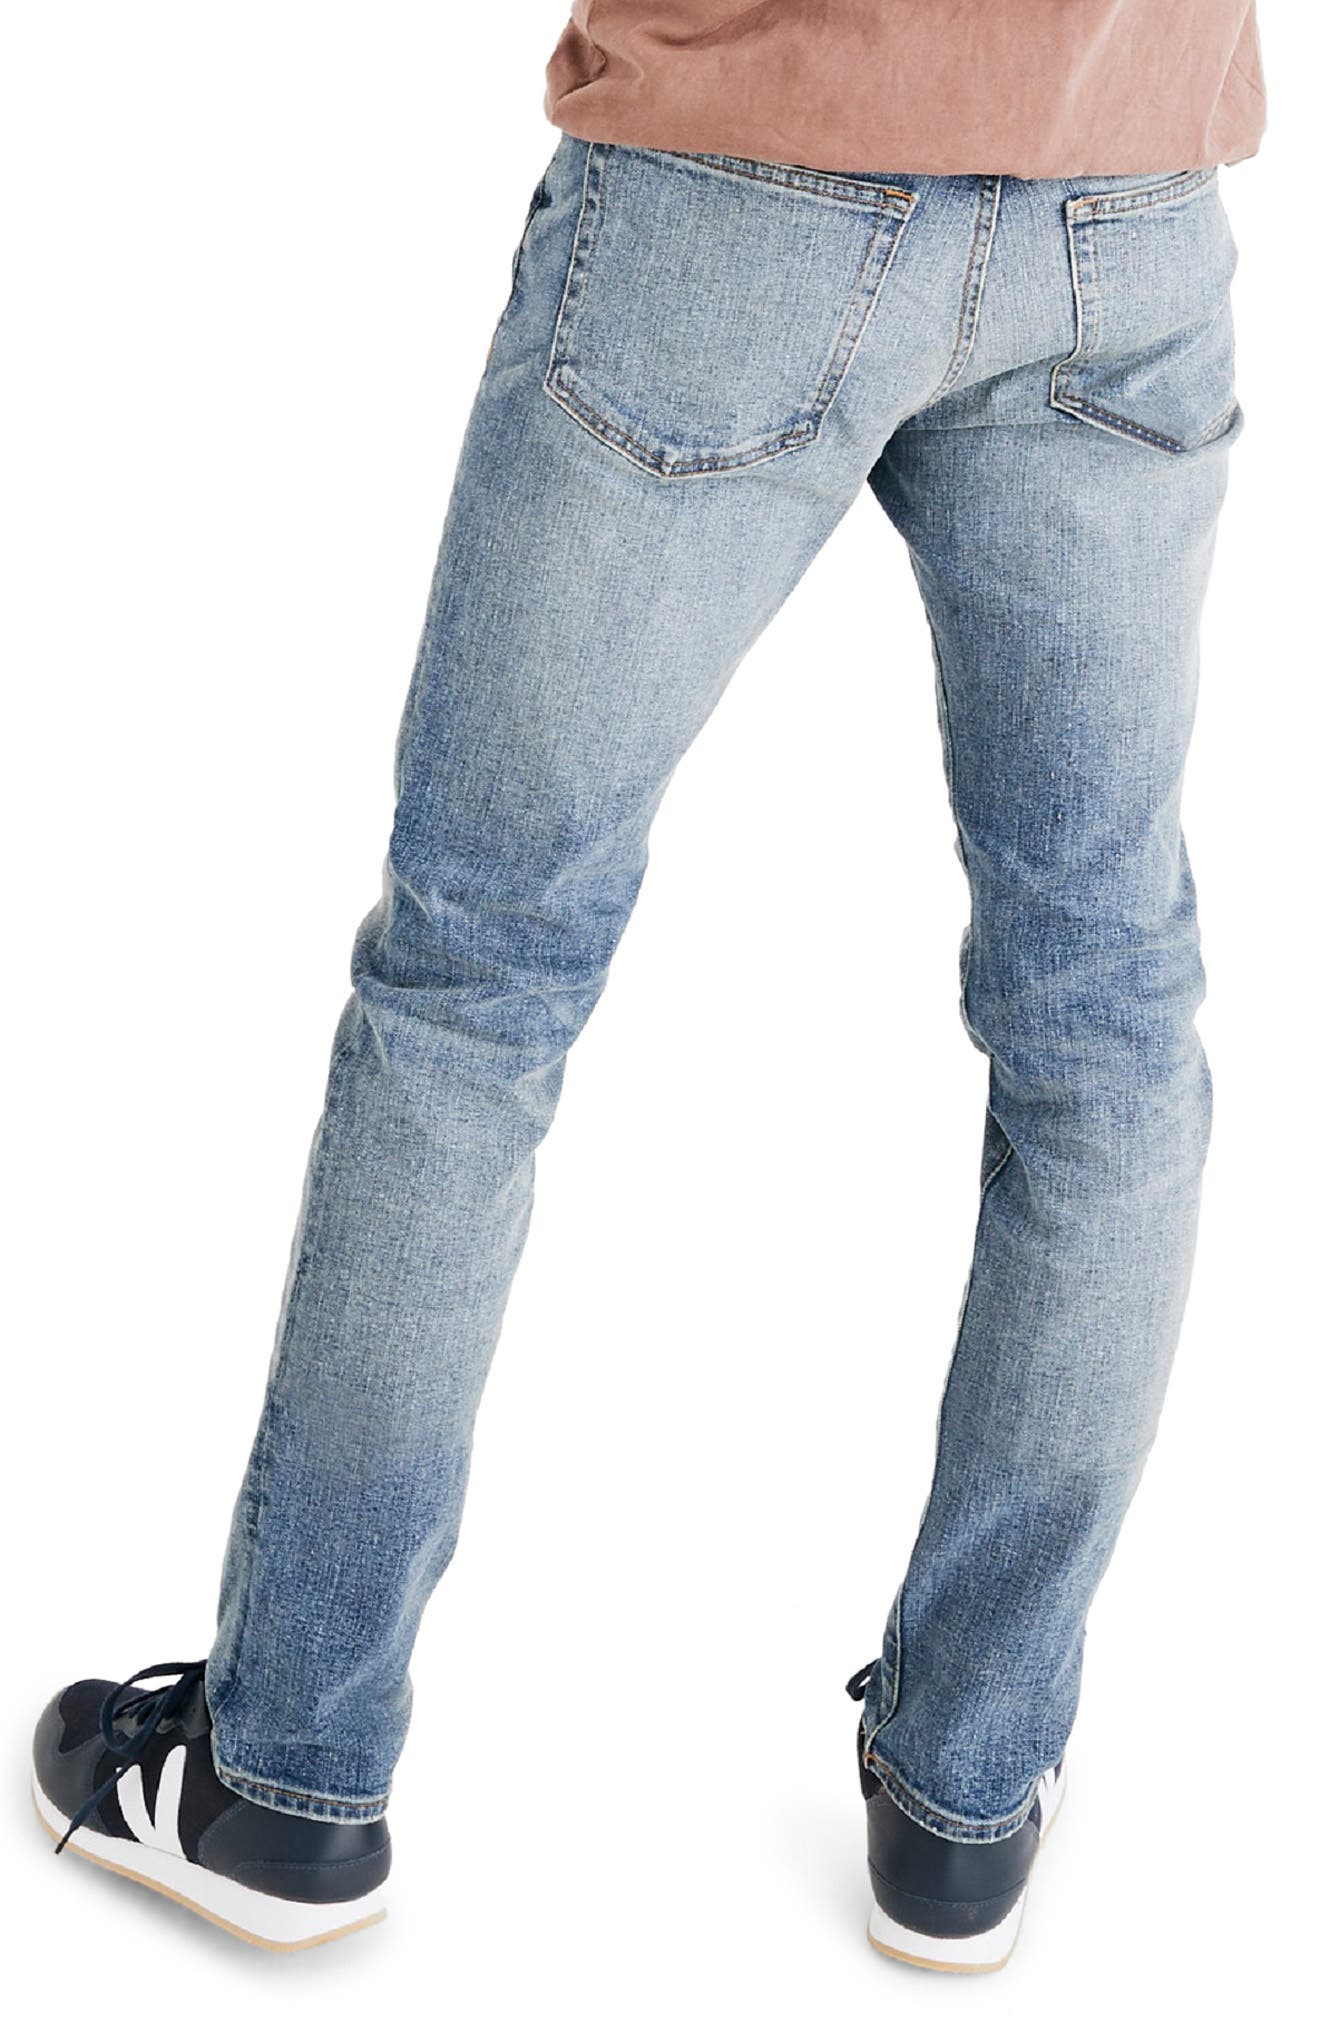 Slim Fit Jeans,                             Alternate thumbnail 2, color,                             BAYWOOD WASH